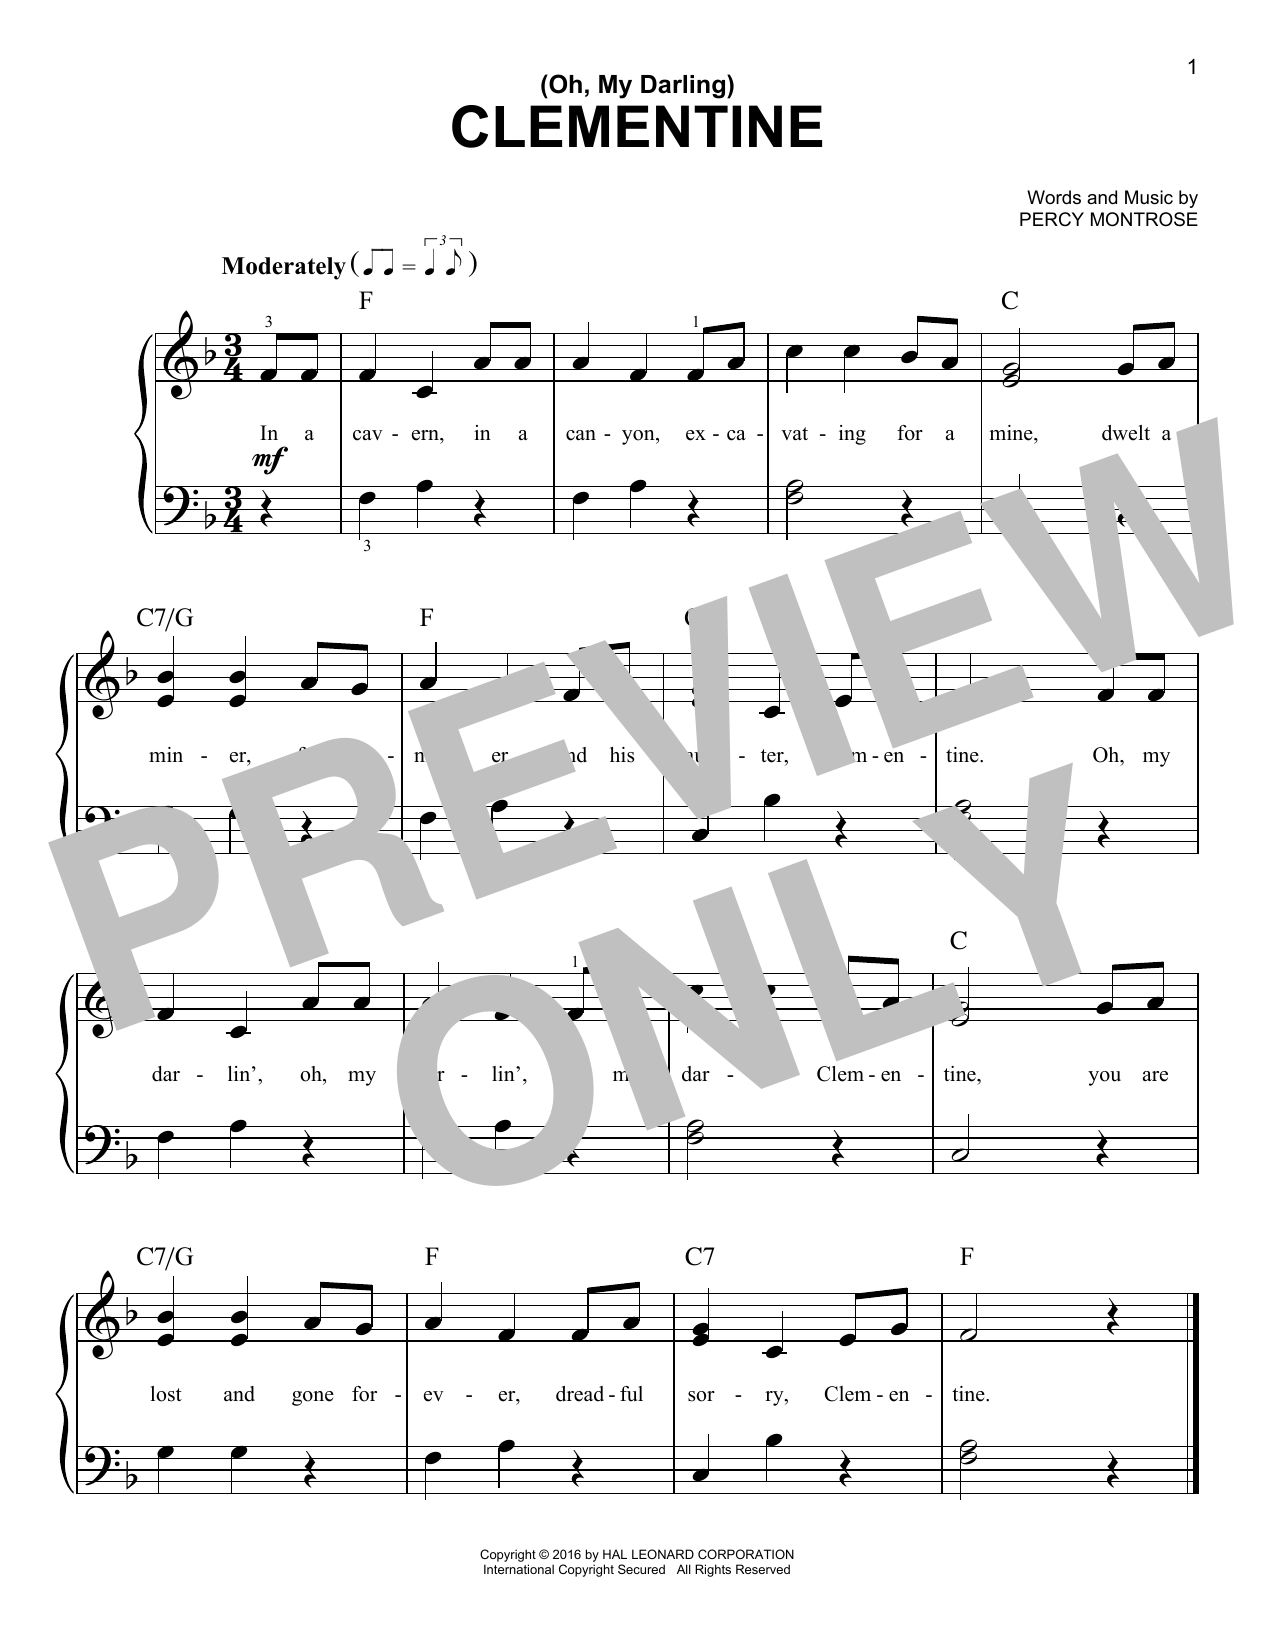 Percy Montrose (Oh, My Darling) Clementine sheet music notes and chords. Download Printable PDF.